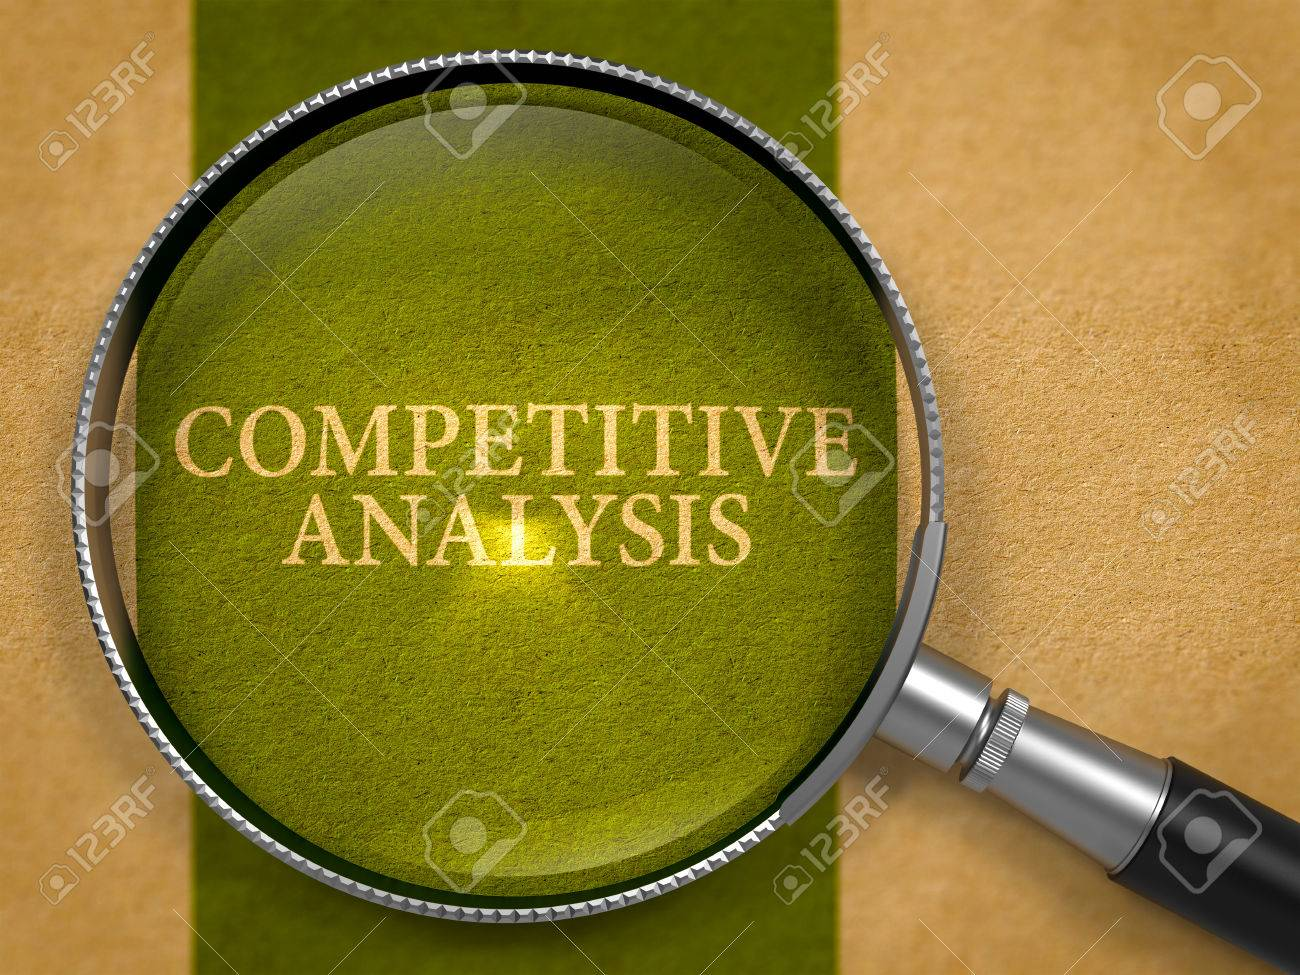 Competitive Analysis through Loupe on Old Paper with Dark Green Vertical Line Background. 3d Render. - 51713571